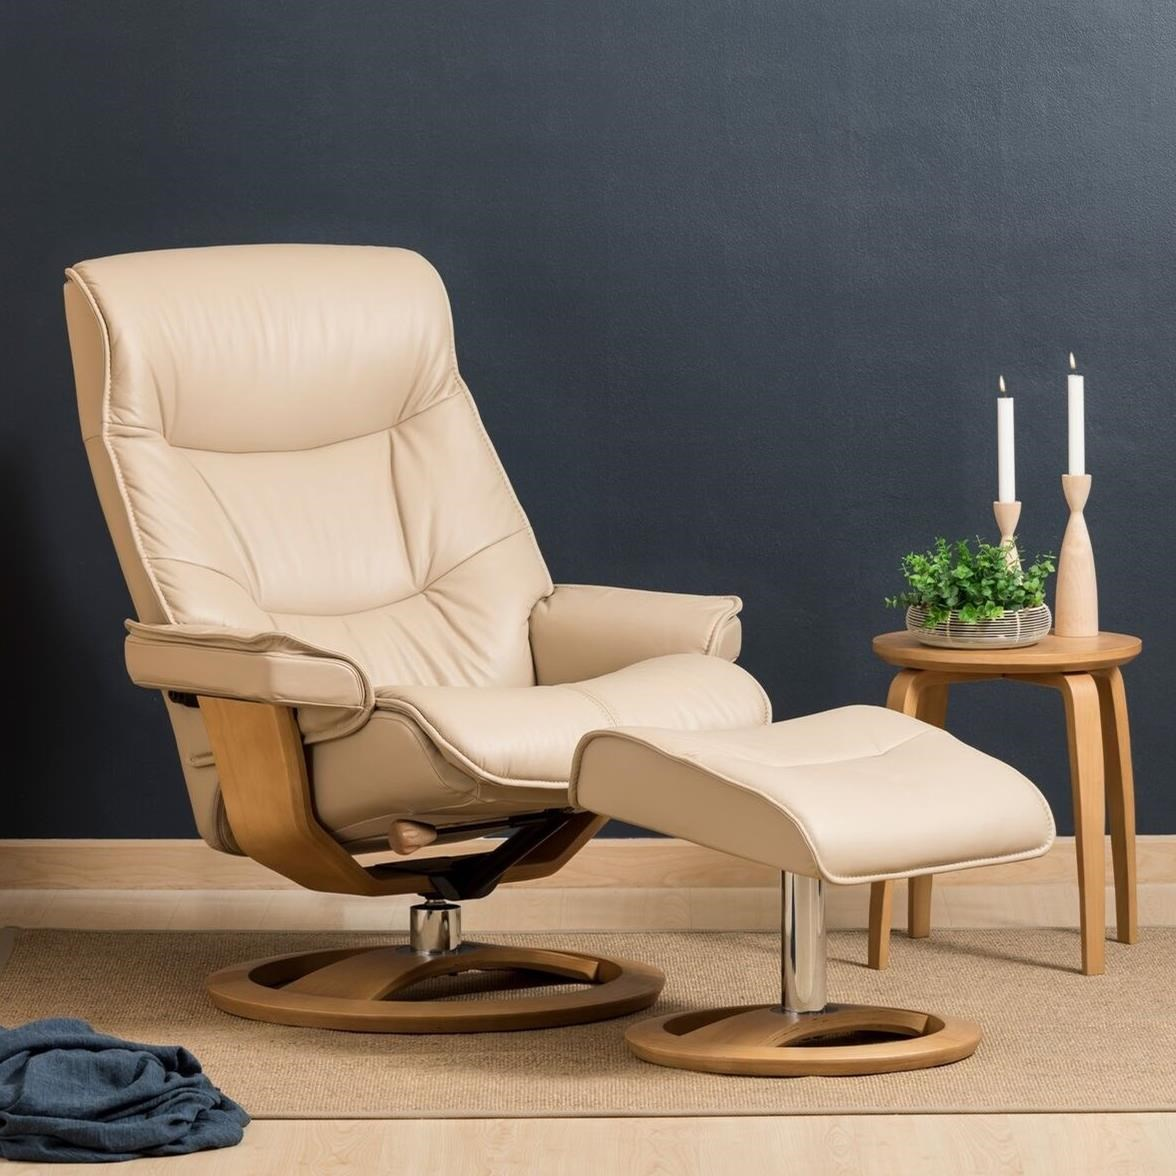 Regal Large Cortina Recliner and Ottoman by IMG Norway at Wilson's Furniture